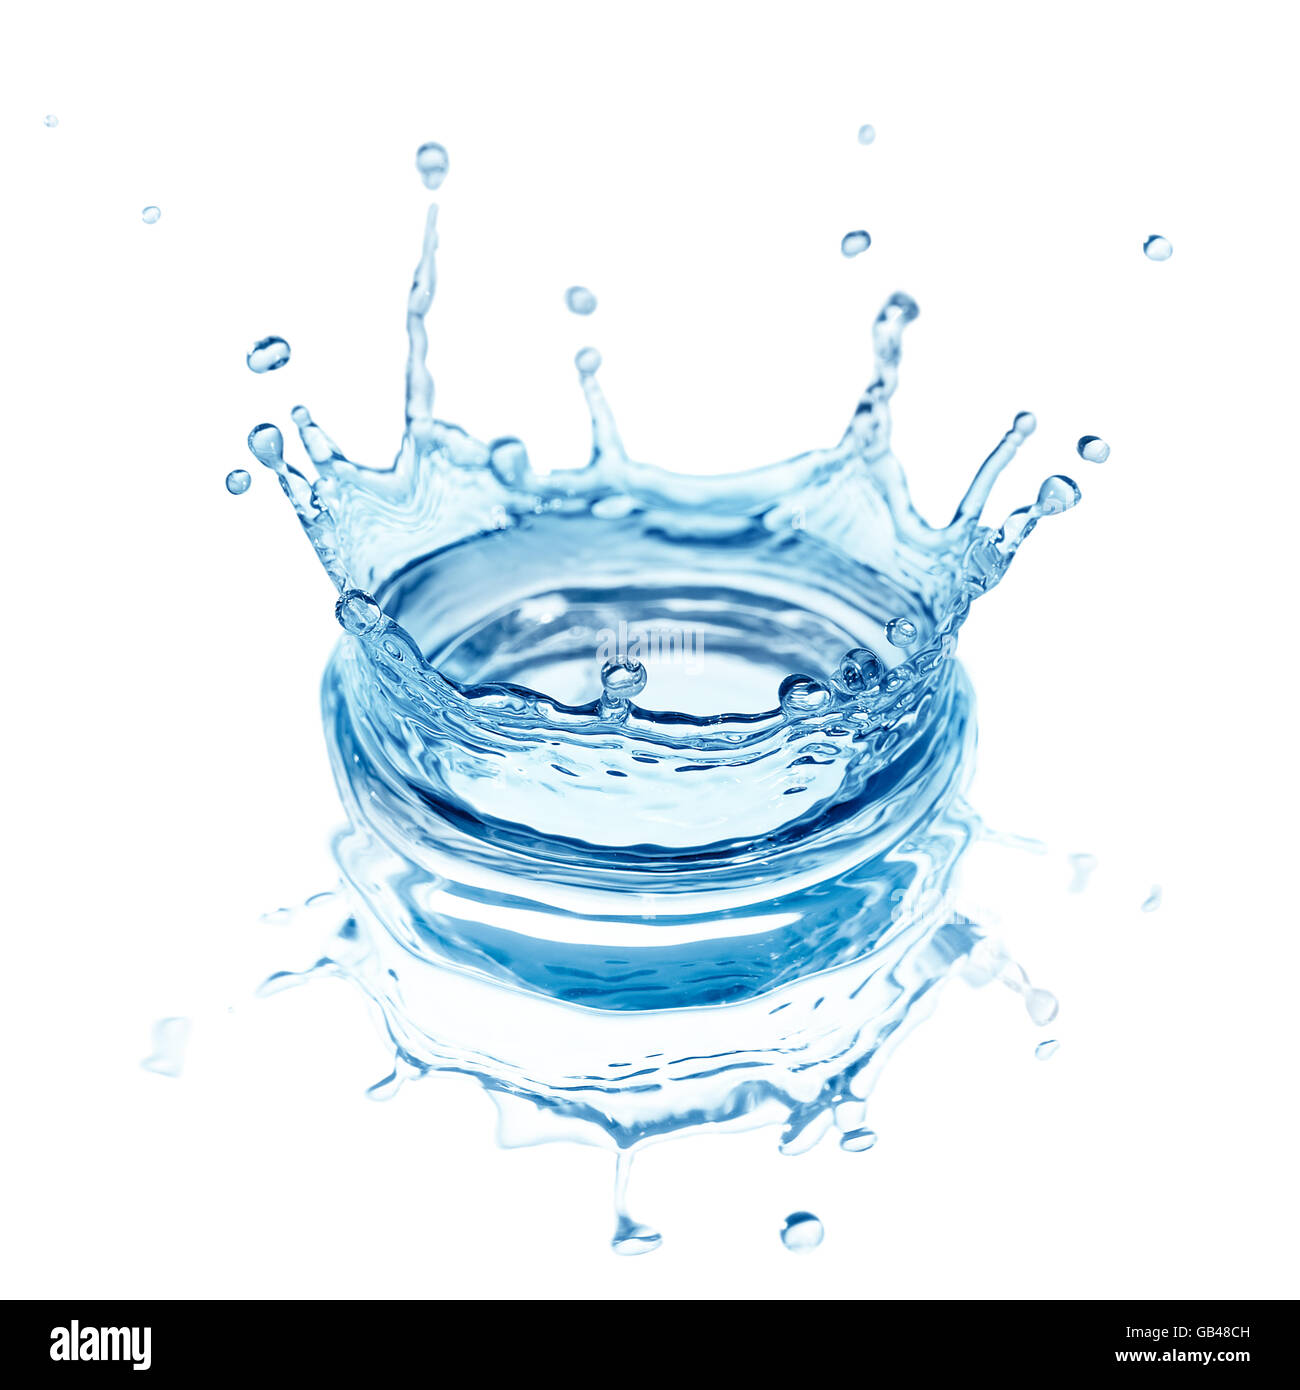 splash water isolated on a white background - Stock Image